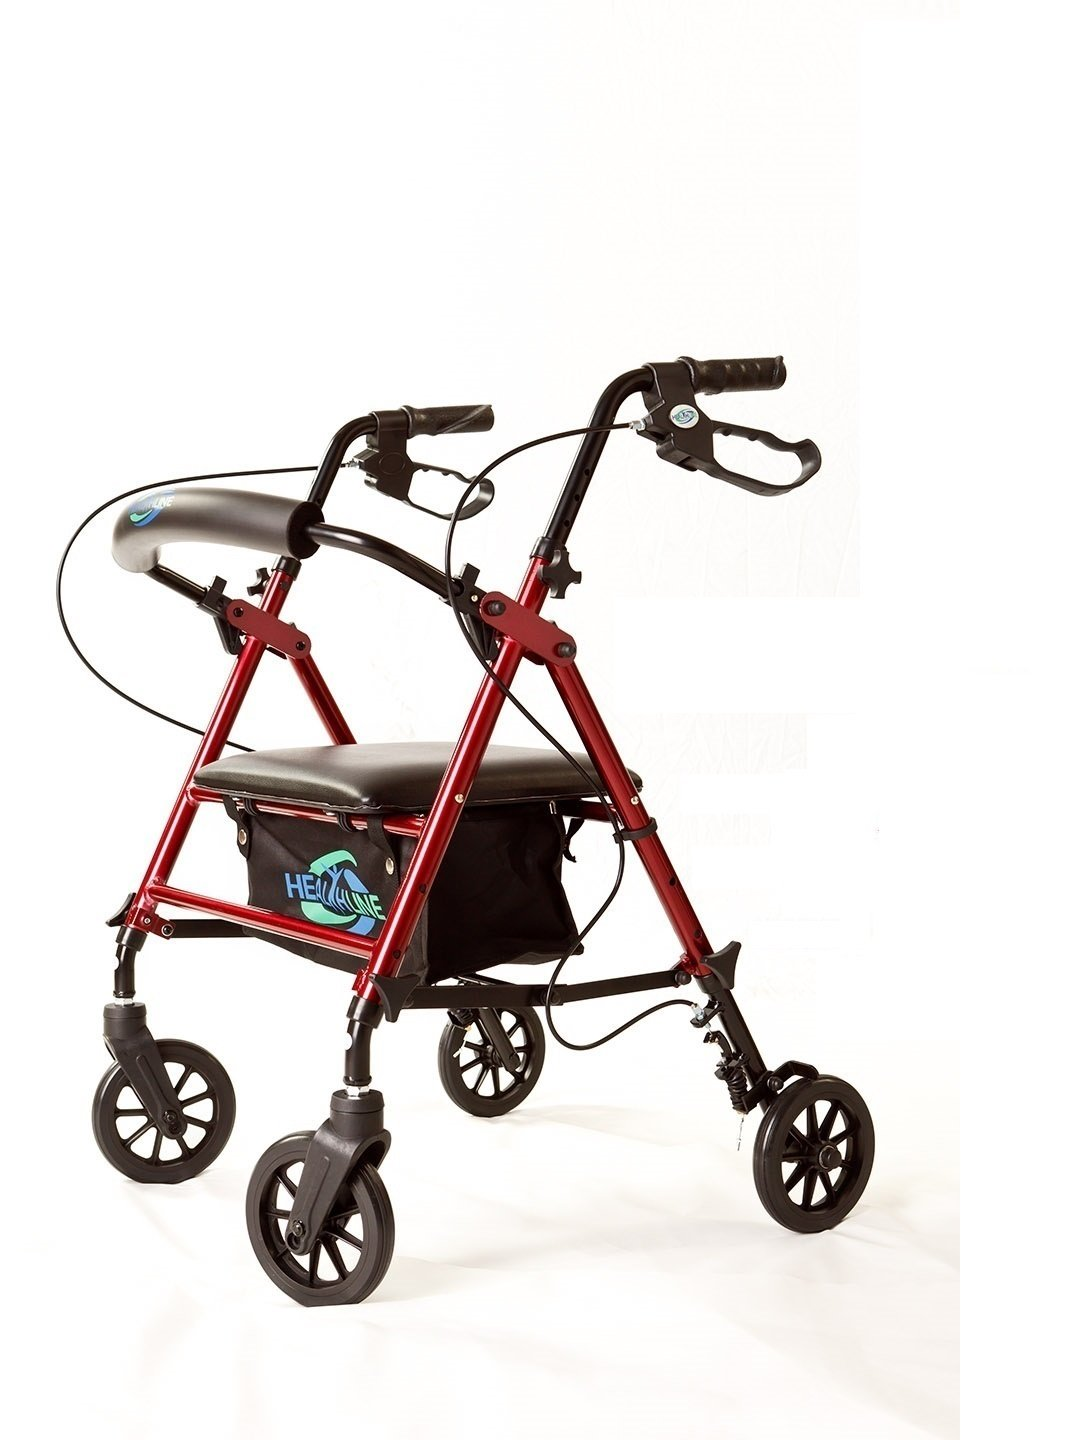 Super Light Rollator Lightweight Aluminum Folding Walker with Seat and Loop Brakes, 6'' Wheels, Height Easy Adjustable by Legs and Arms, Red